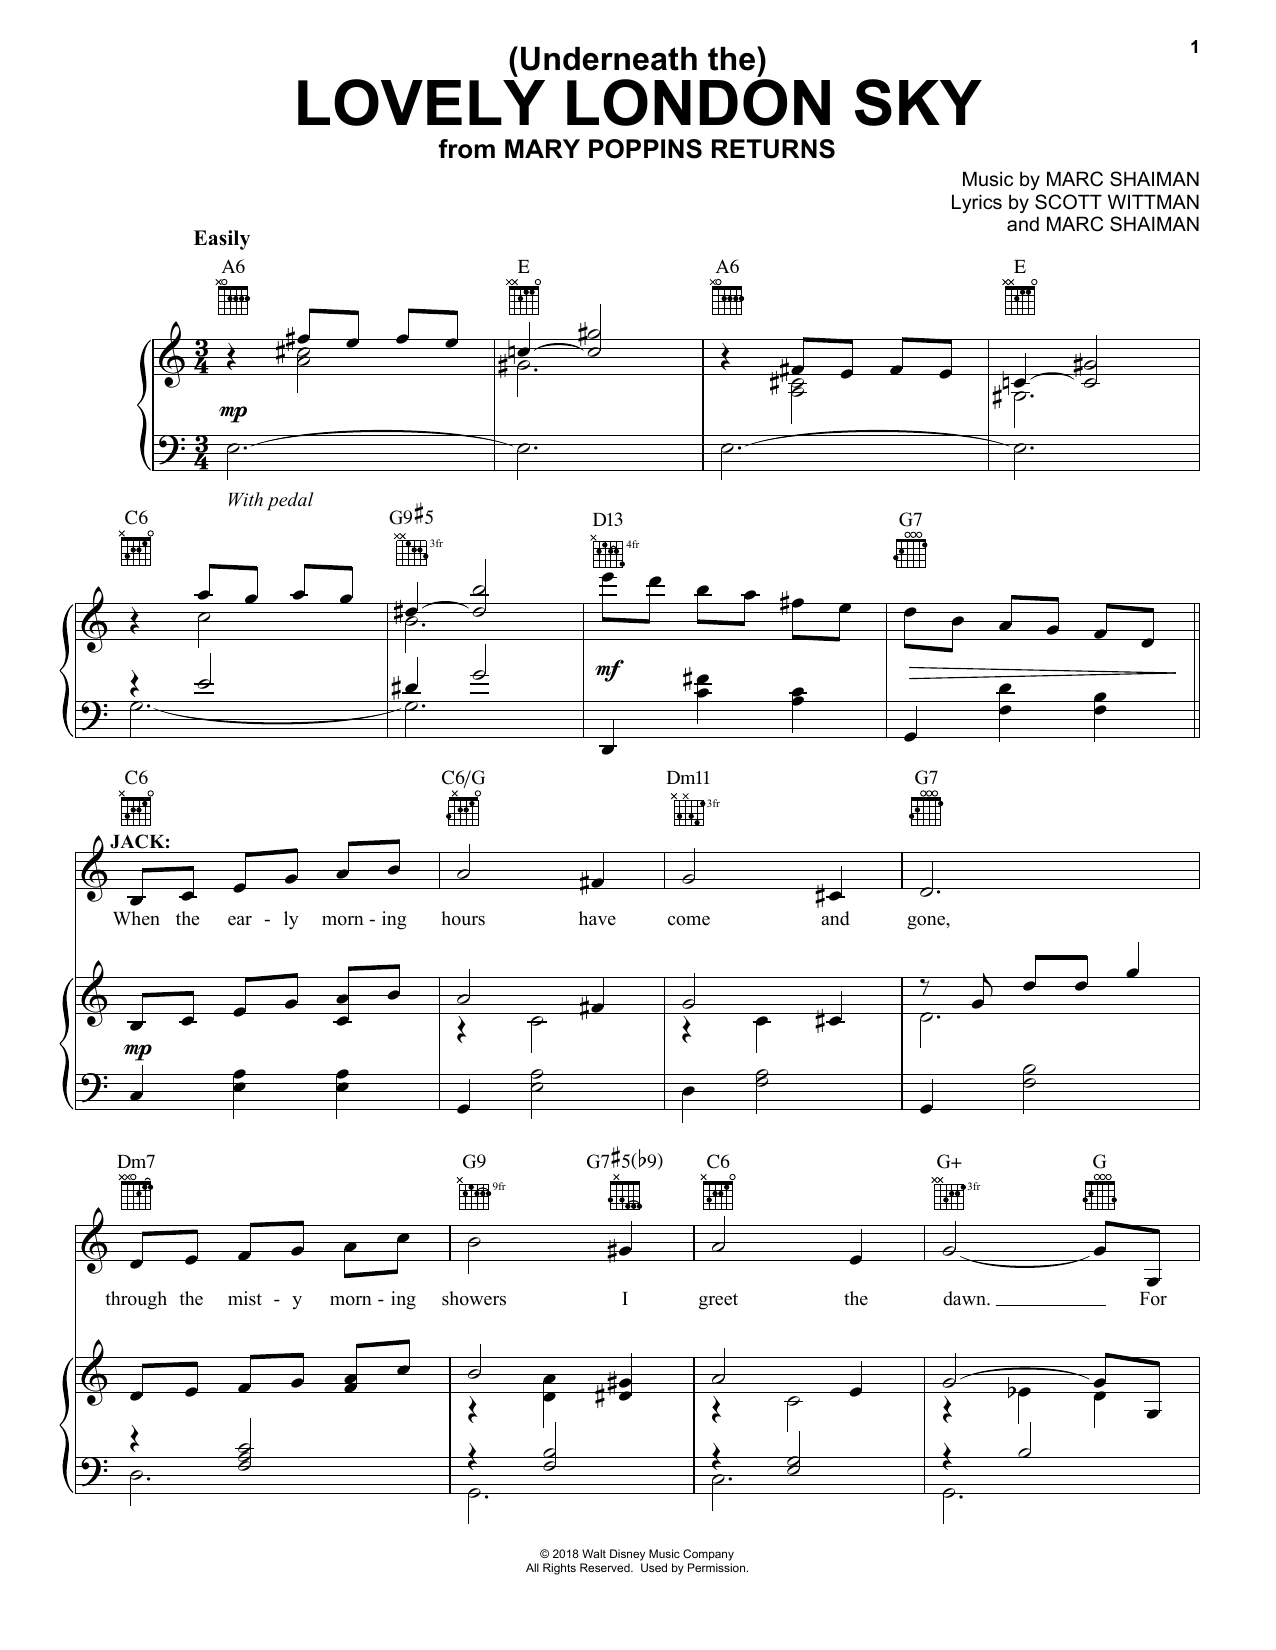 Lin-Manuel Miranda (Underneath The) Lovely London Sky (from Mary Poppins Returns) sheet music notes and chords. Download Printable PDF.